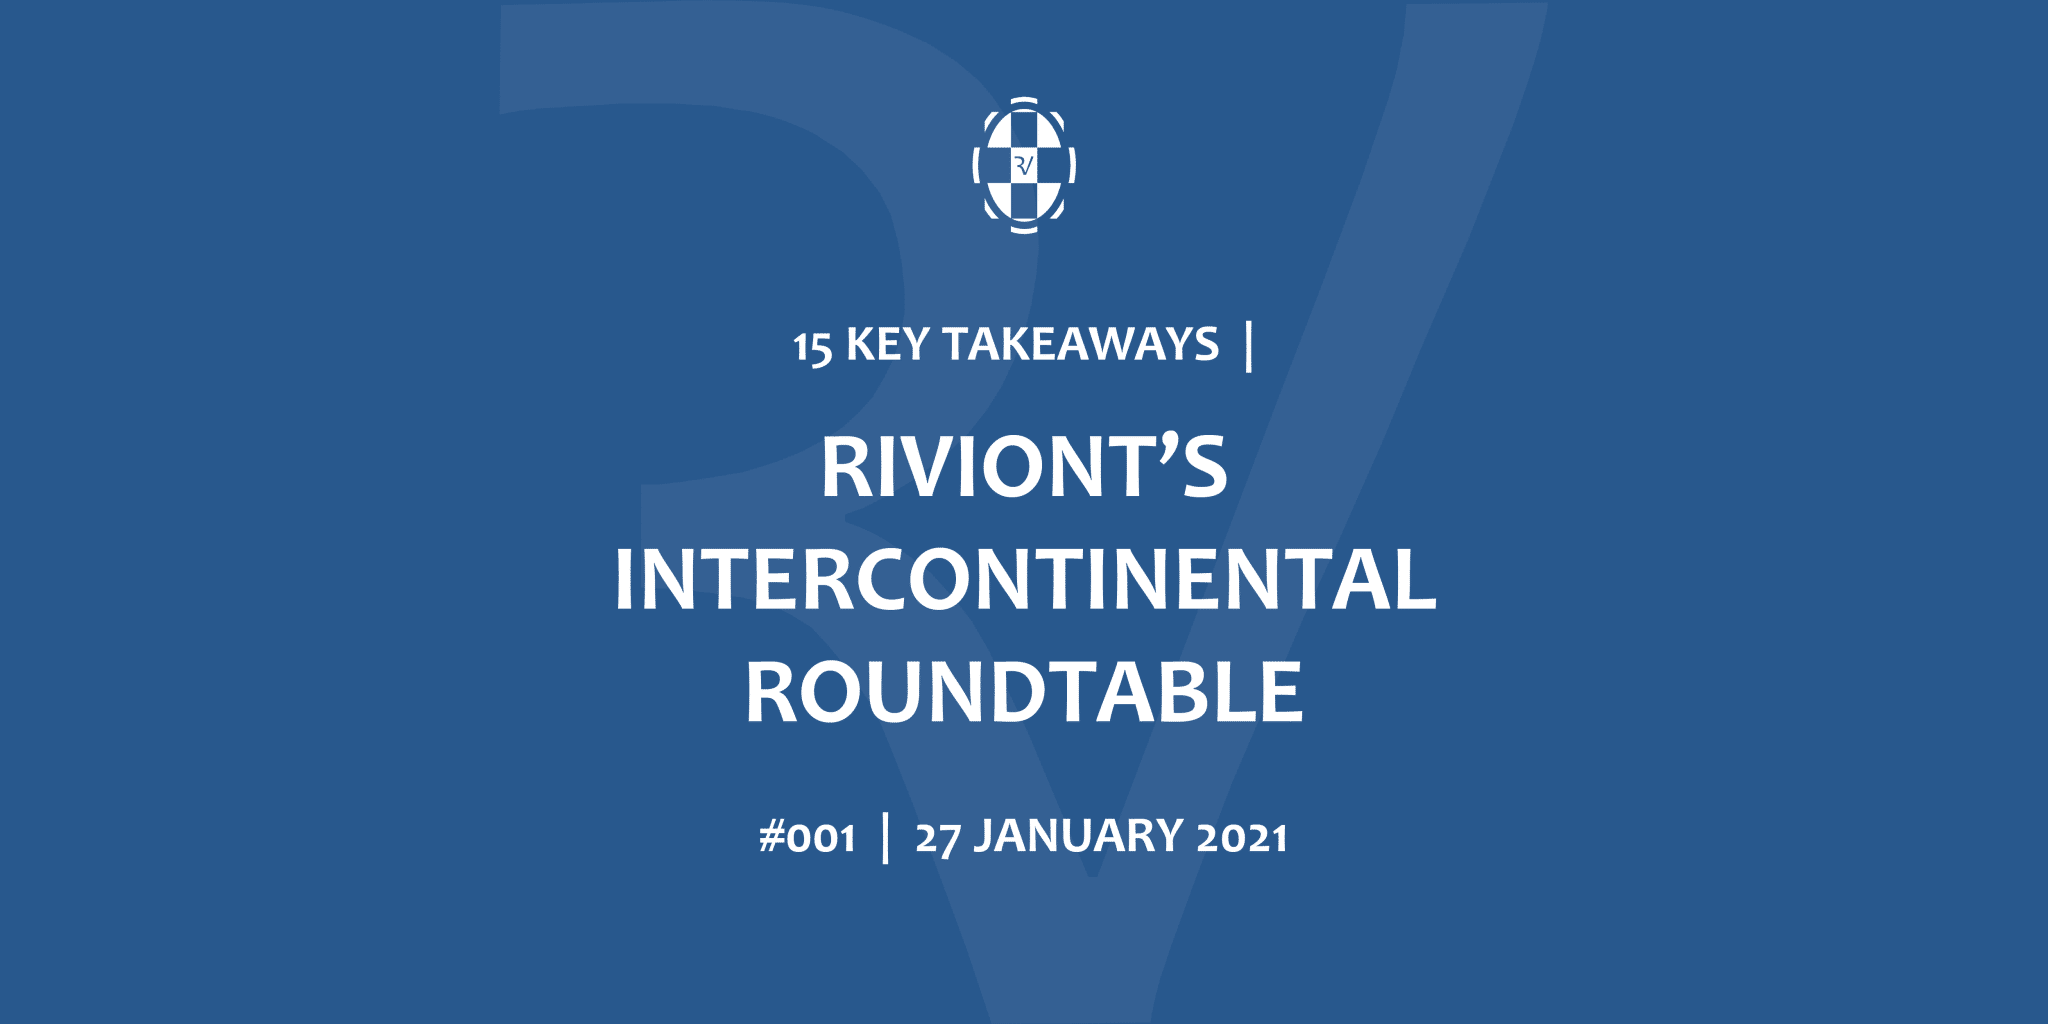 15 KEY TAKEAWAYS RIVIONT'S INTERCONTINENTAL ROUNDTABLES 27 JANUARY 2021